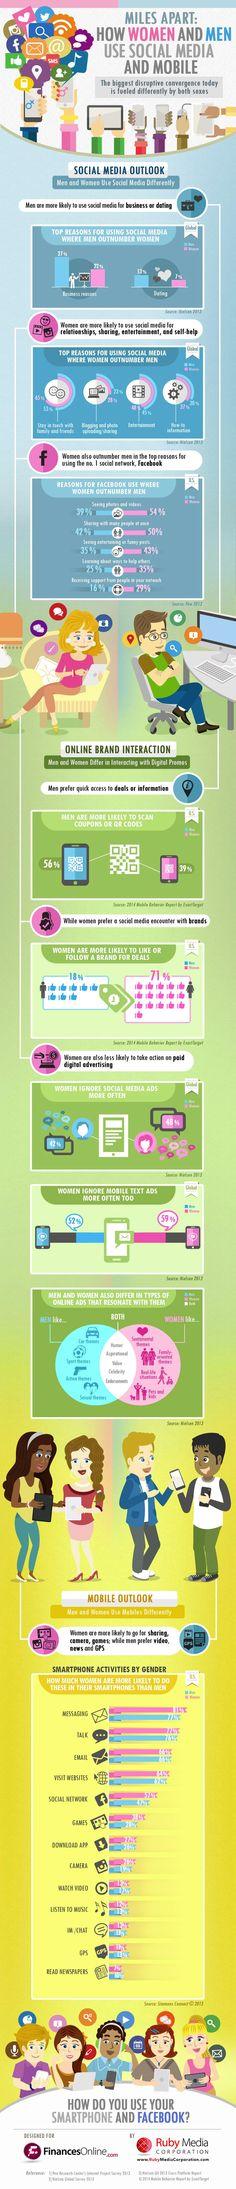 How men women social media differently infographic